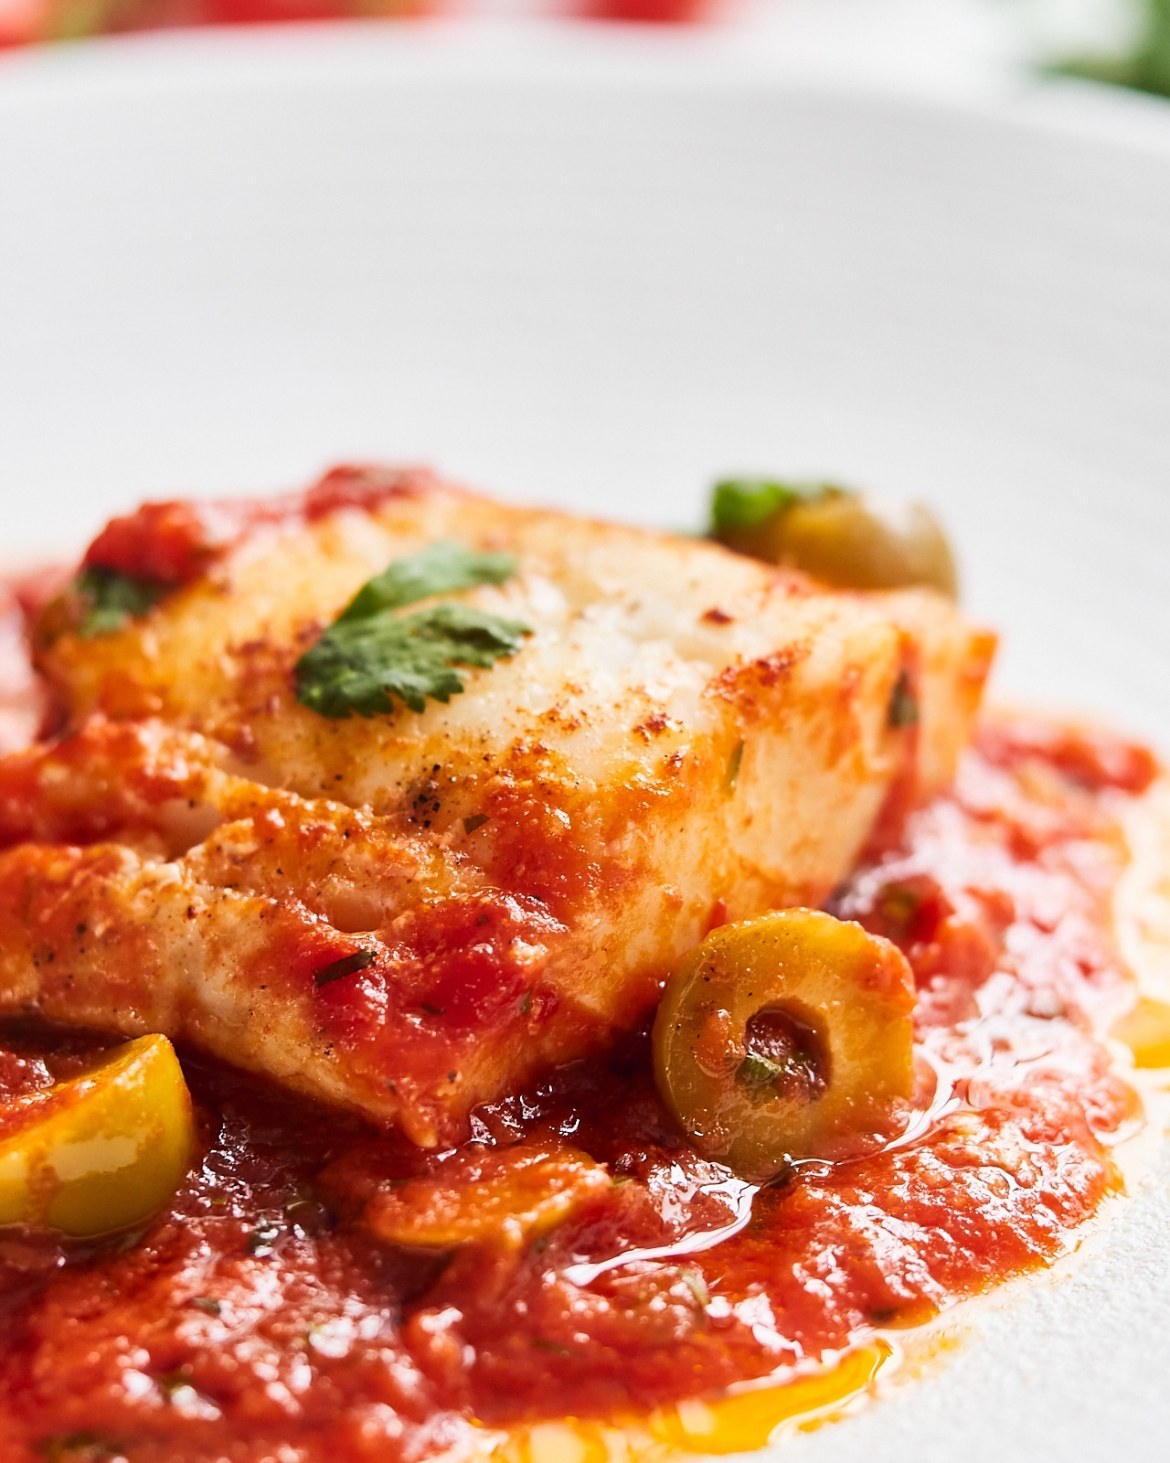 cod fillets in tomato sauce